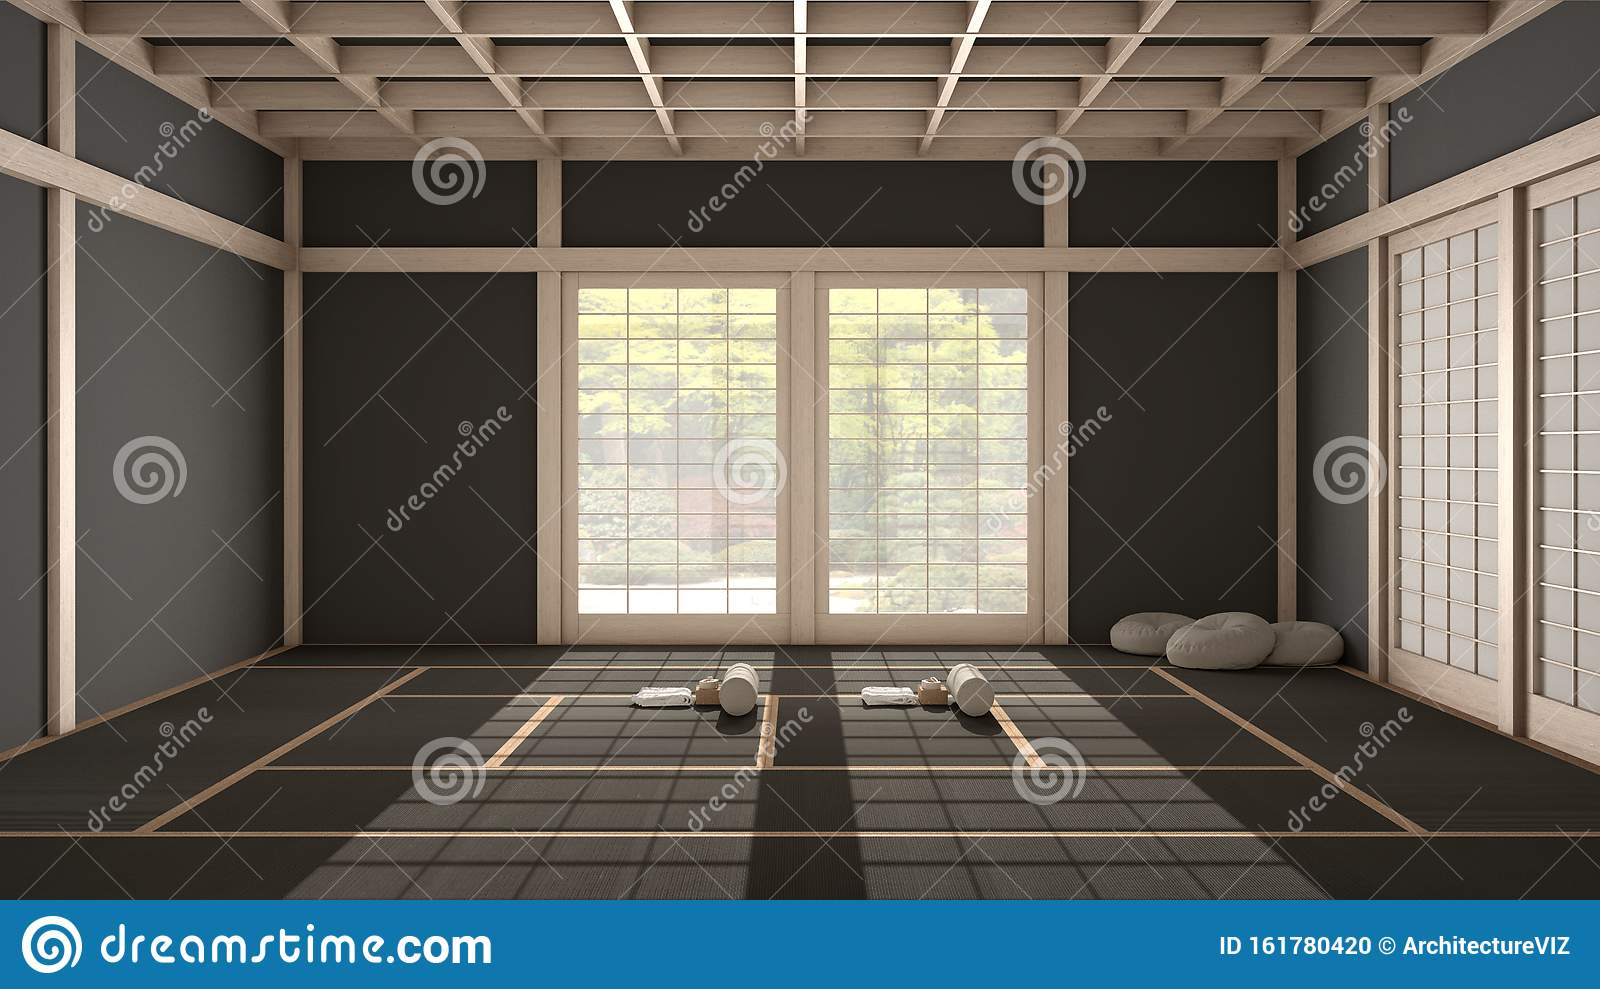 Empty Yoga Studio Interior Design Open Space With Mats Pillows And Accessories Tatami Futon Wooden Roof Window With Zen Stock Illustration Illustration Of Lifestyle Peaceful 161780420